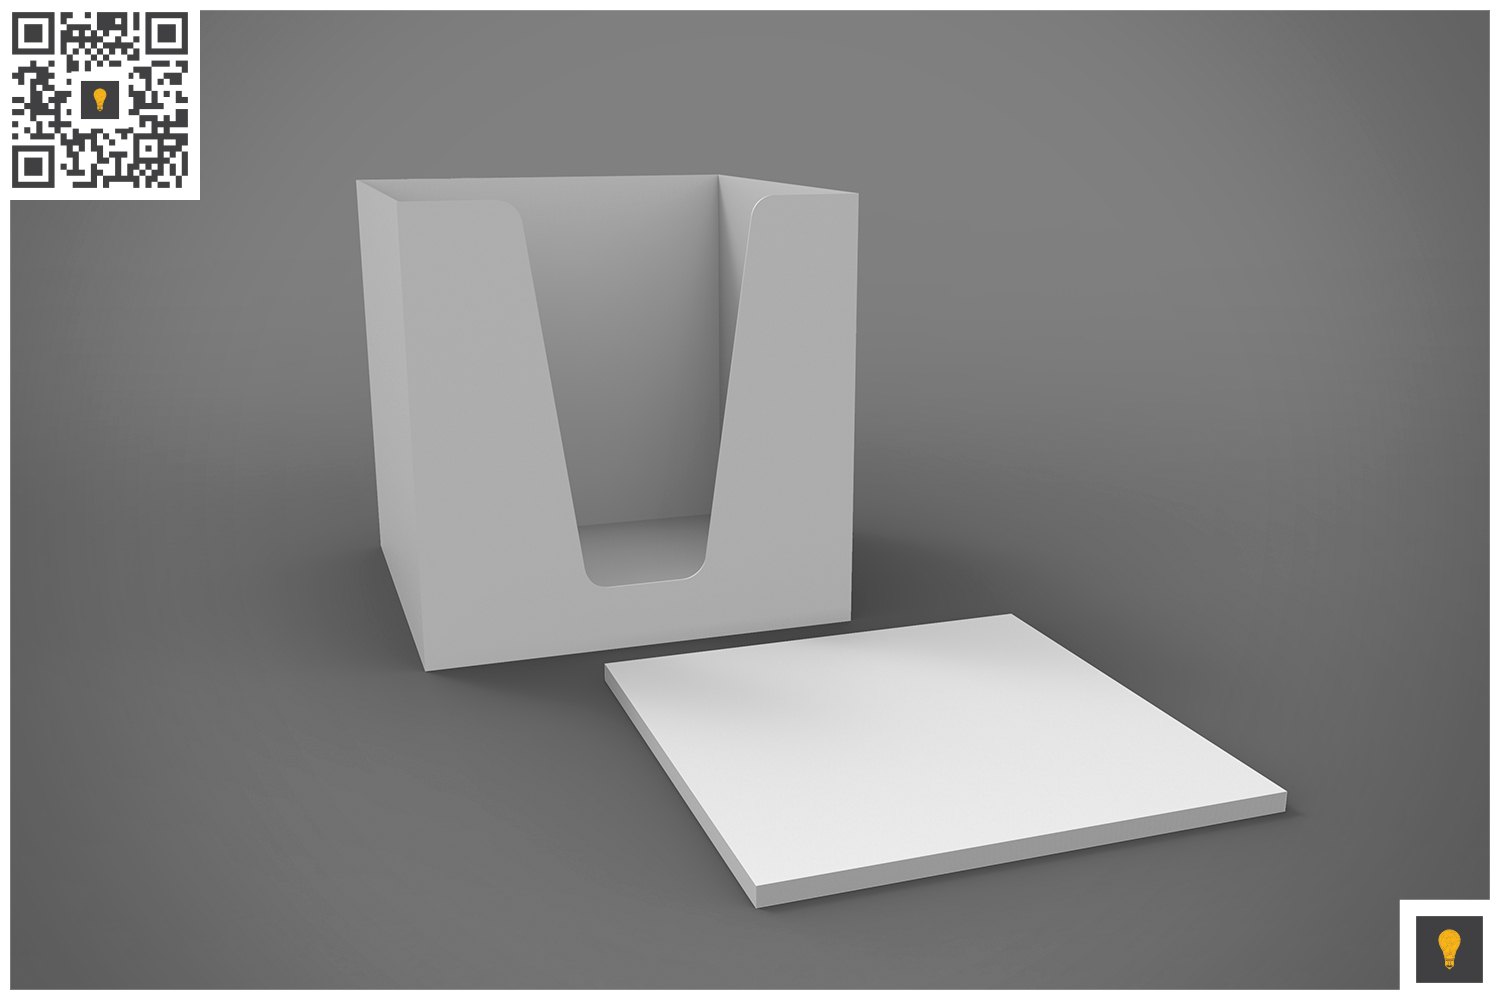 Notepad Holder & Notes 3D Render example image 2